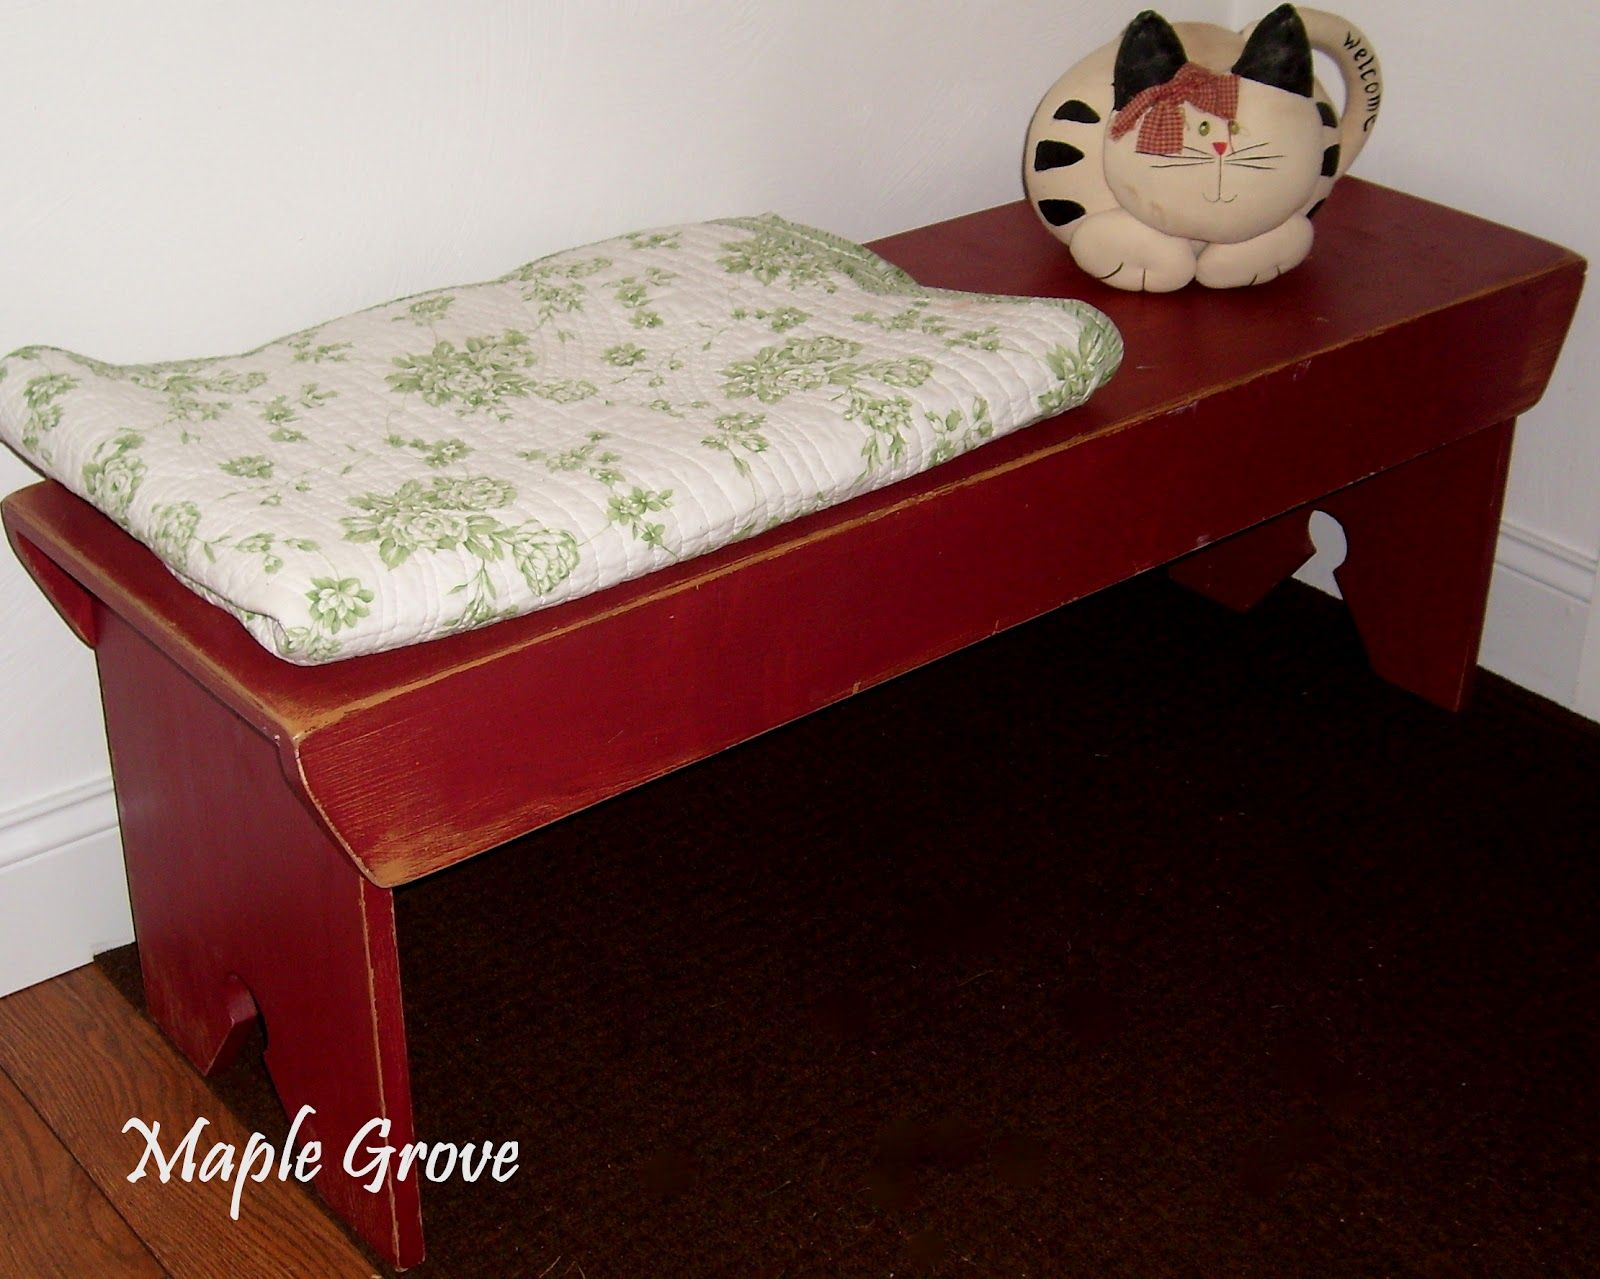 Maple Grove: Country Furnishings · Country Furniture